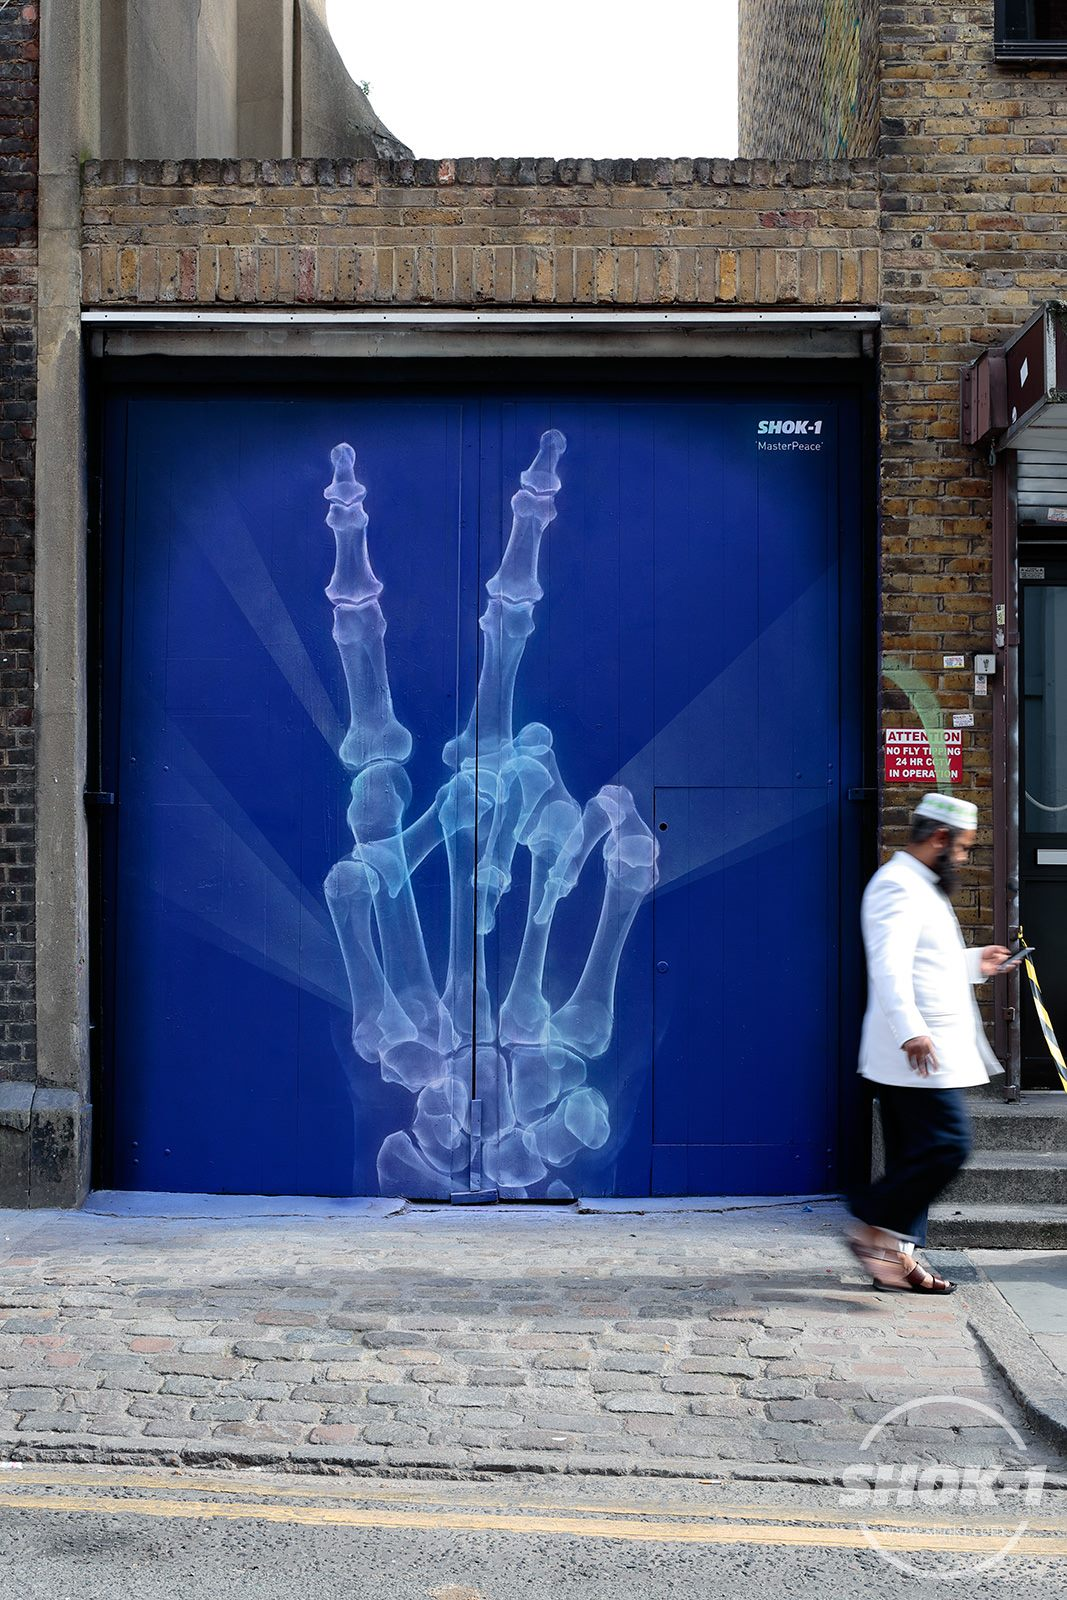 "Shok-1 - ""MasterPeace"" painted in response to hostilities arriving form the UK's EU referendum."